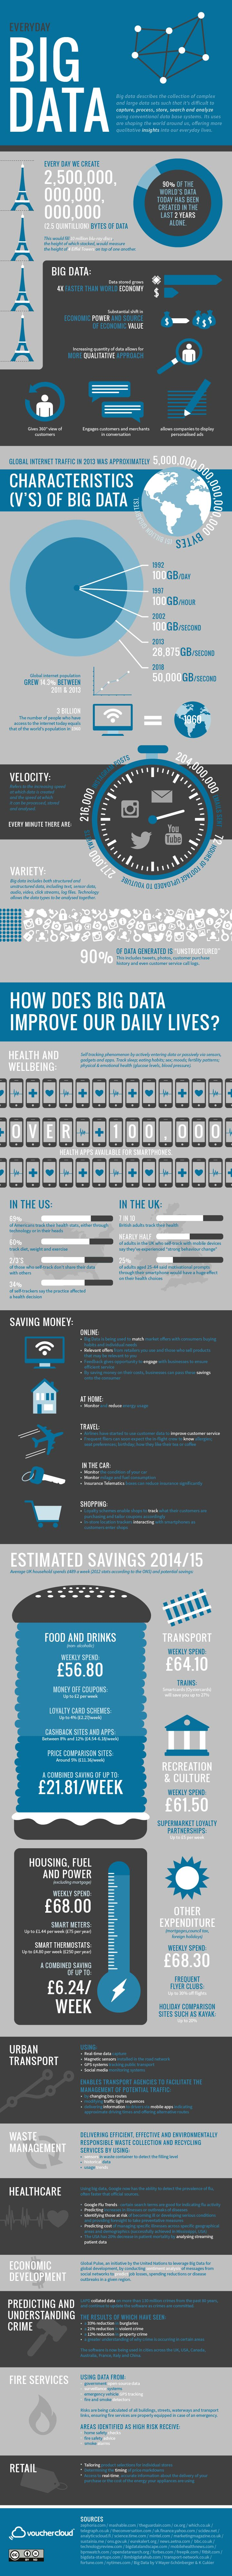 Enterprise analytics serving big data projects for healthcare - Big Data Infographic